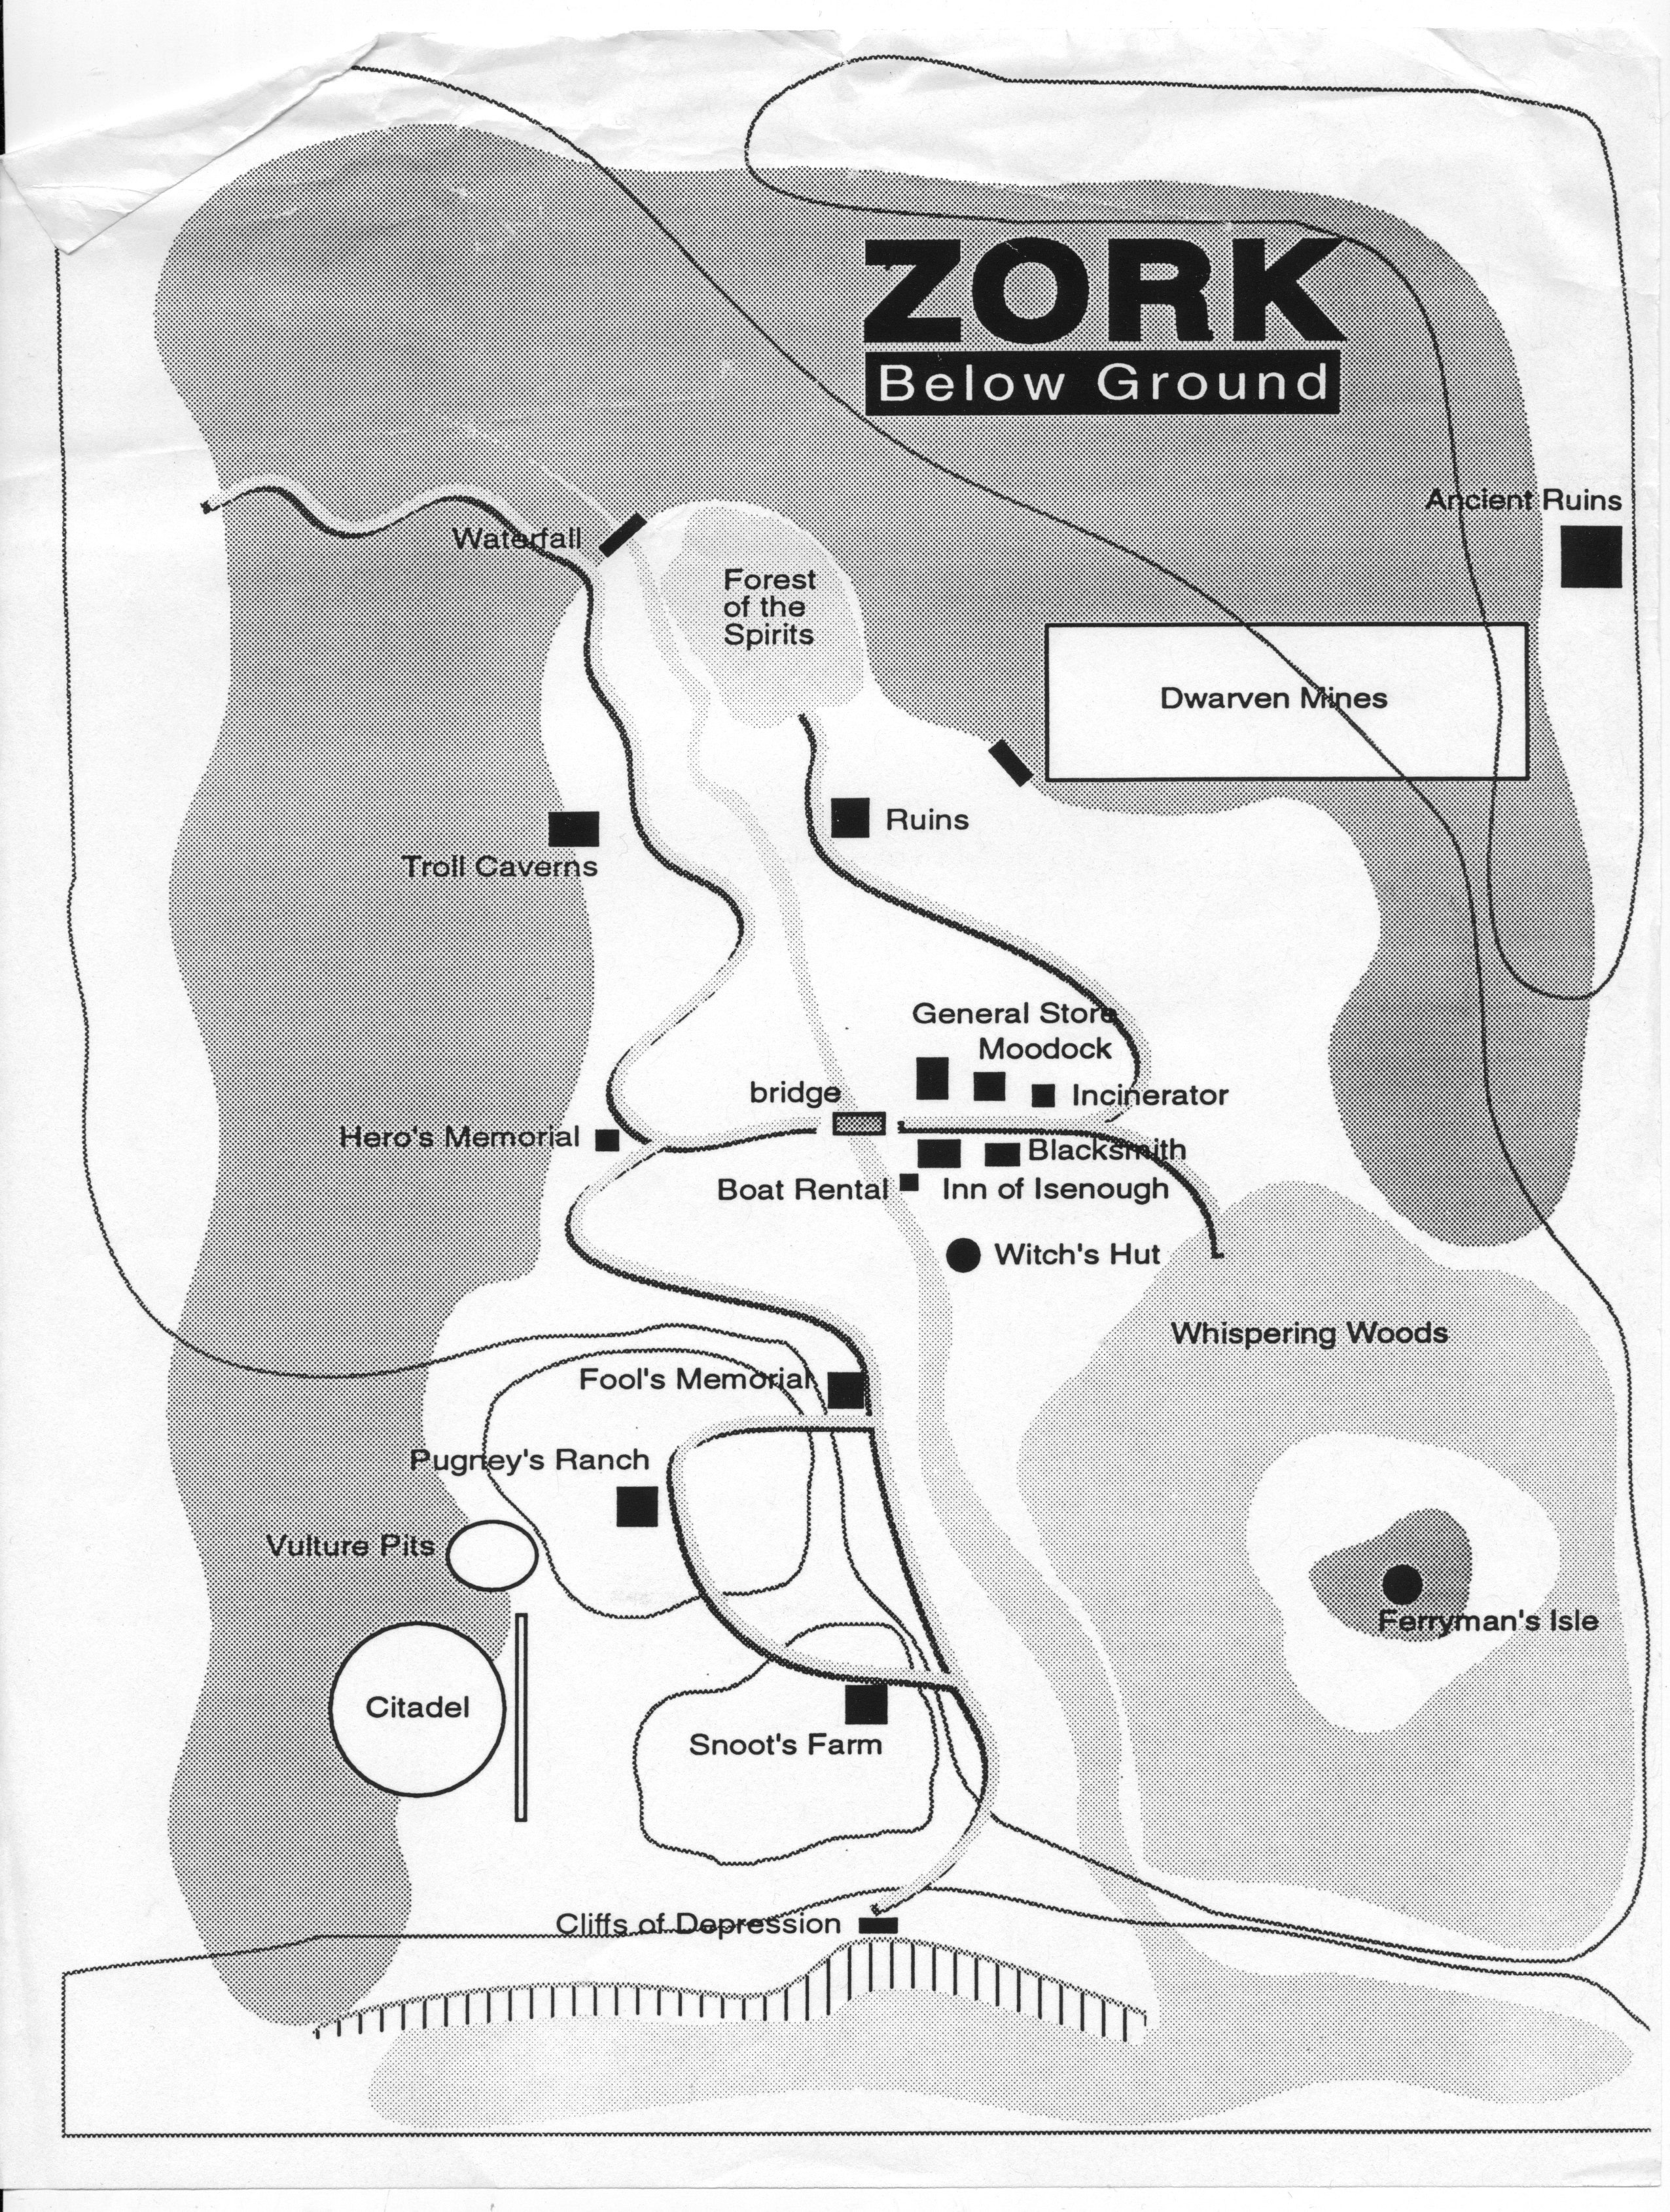 Return to Zork Design Maps on gears of war map, far cry 2 map, pac-man map, sid meier's alpha centauri map, the great maze map, return to zork, civilization map, portal map, zork zero, ace combat map, beyond zork, interactive fiction, zork ii, etrian odyssey map, starcraft map, a mind forever voyaging, proving grounds of the mad overlord, colossal cave adventure, dead ops arcade map, zork: the undiscovered underground, galactic empire map, the lost treasures of infocom, zork: nemesis, small amusement park map, pool of radiance map, myst map, world of warcraft map, metal gear solid map, super mario bros. map, the witcher map,